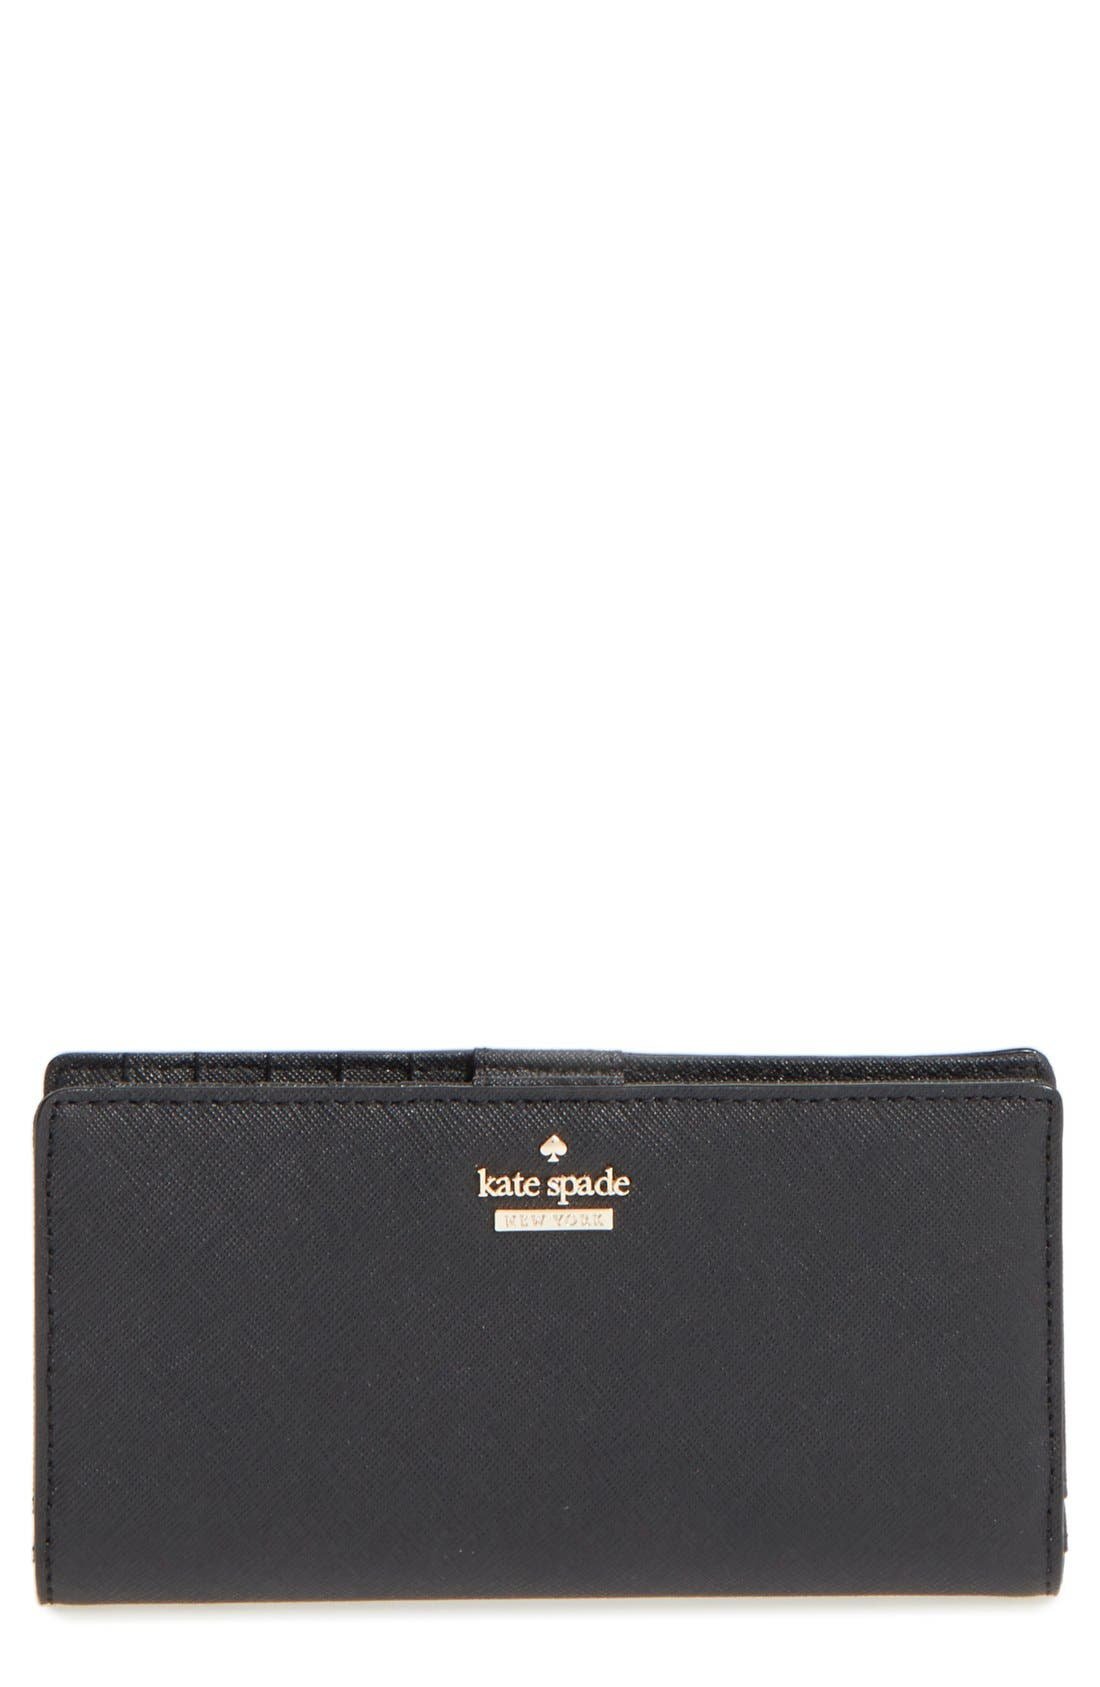 'cameron street - stacy' textured leather wallet,                             Main thumbnail 1, color,                             Black